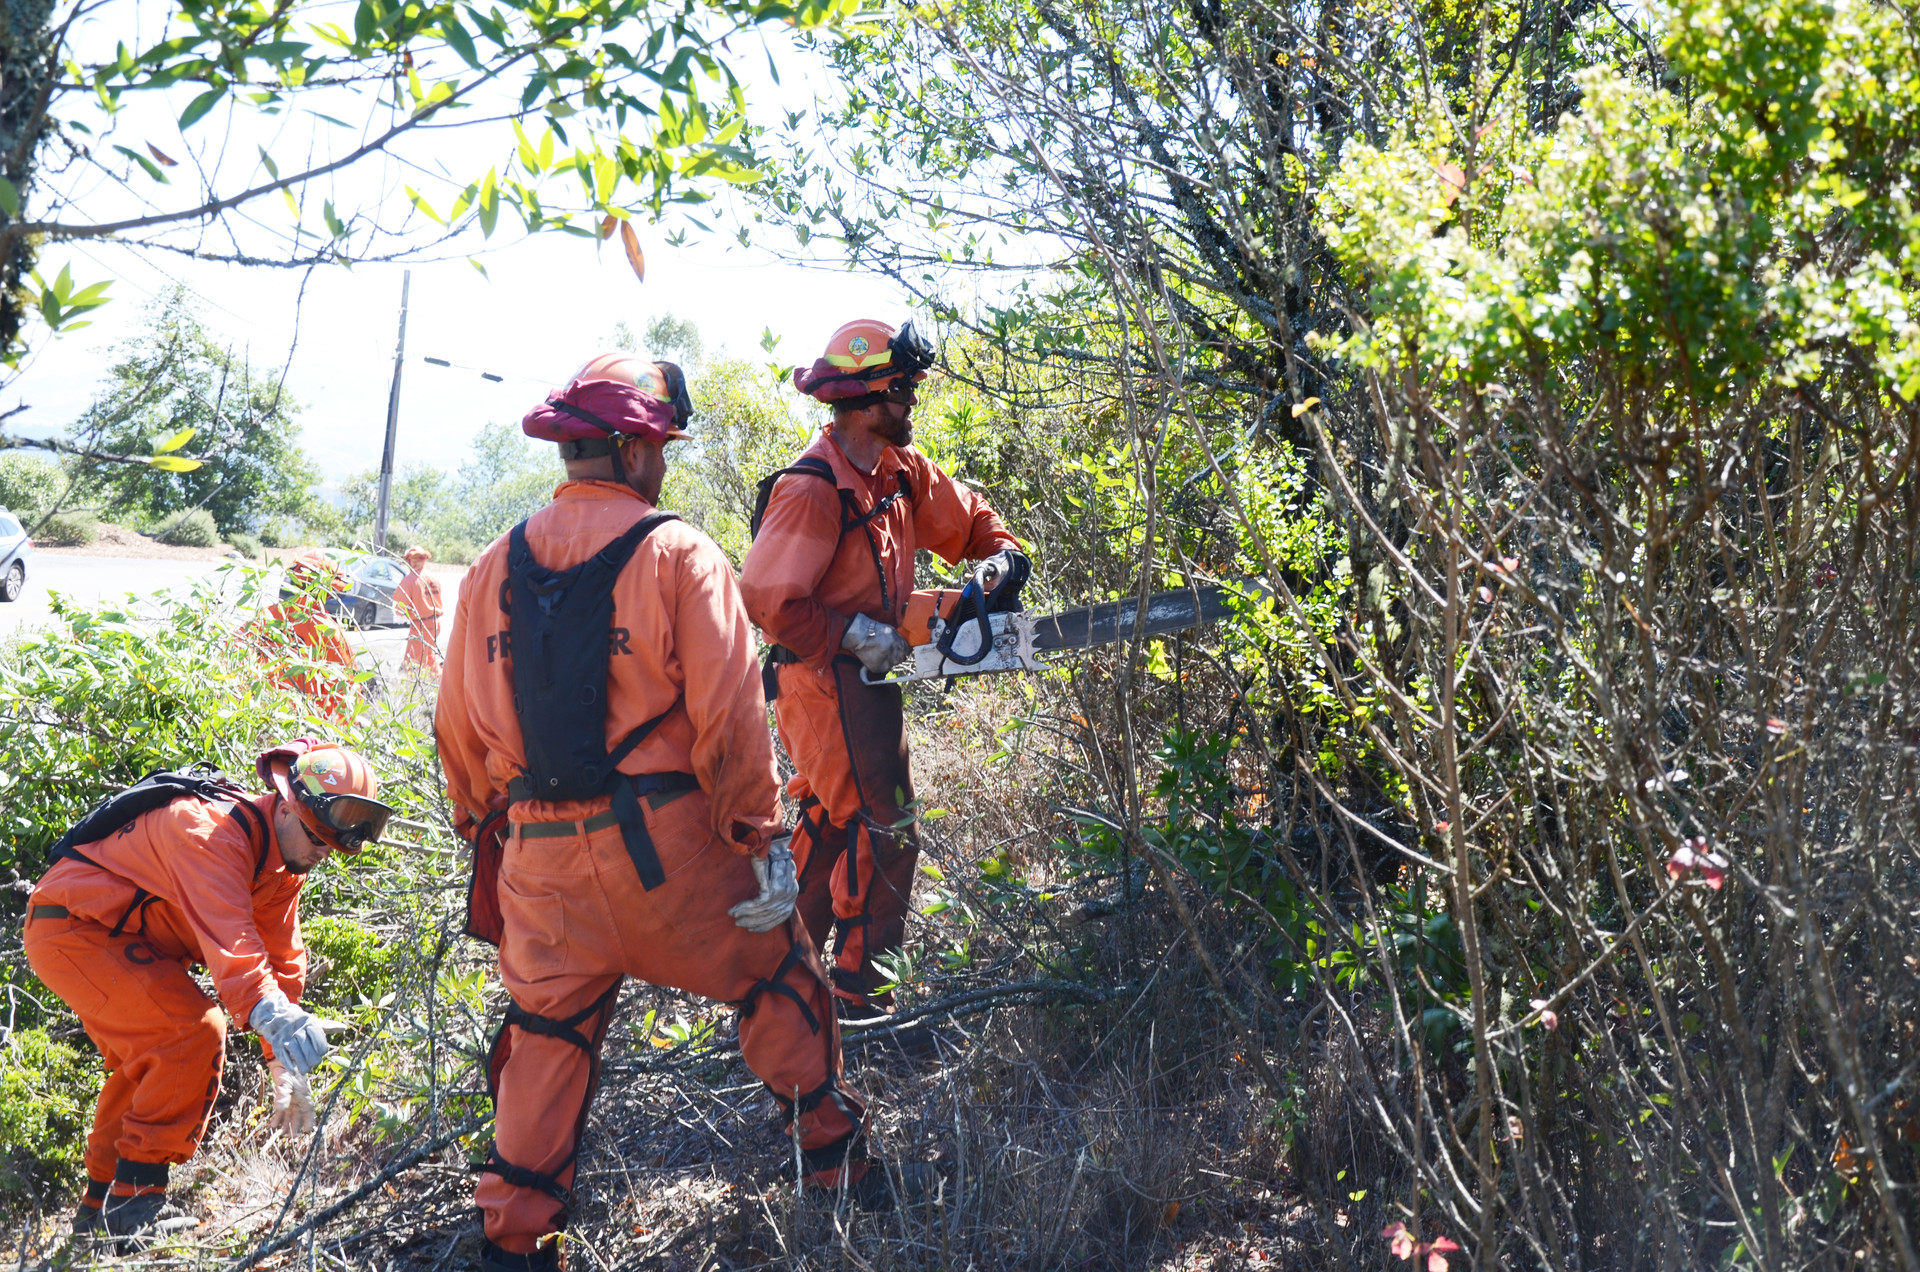 Inmate firefighters clear brush from a roadside in the Berkeley Hills near Tilden Regional Park on Tuesday, Sept. 26, 2017. Fire officials say fuel reduction projects like this are critical to preventing major wildfires.